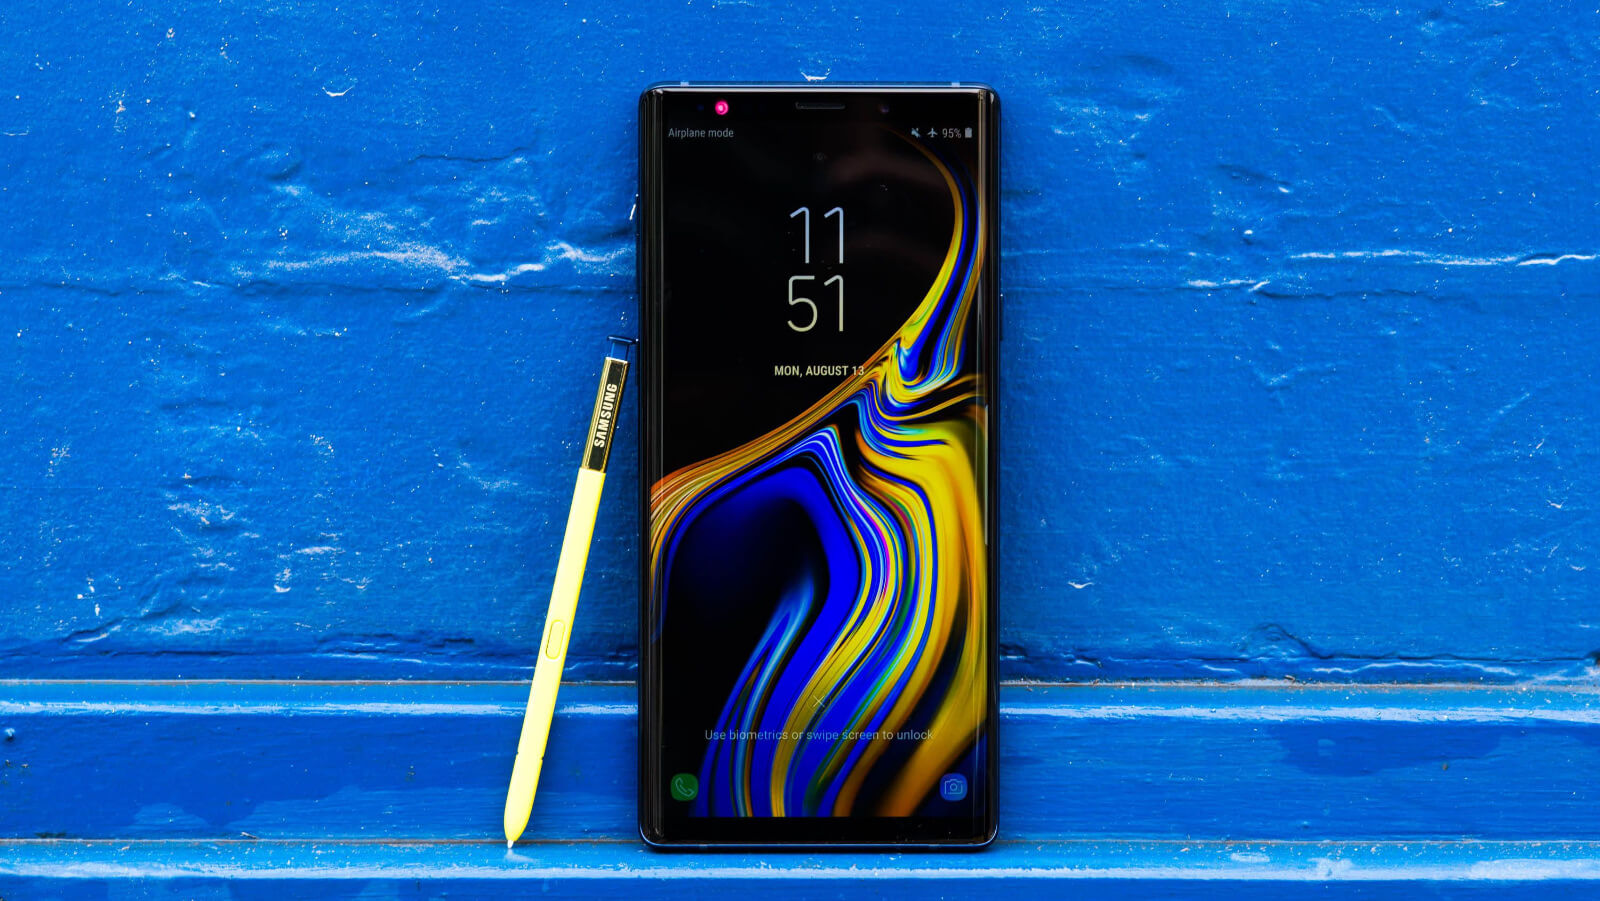 Samsung's upcoming Galaxy Note 10 is reportedly getting a major redesign